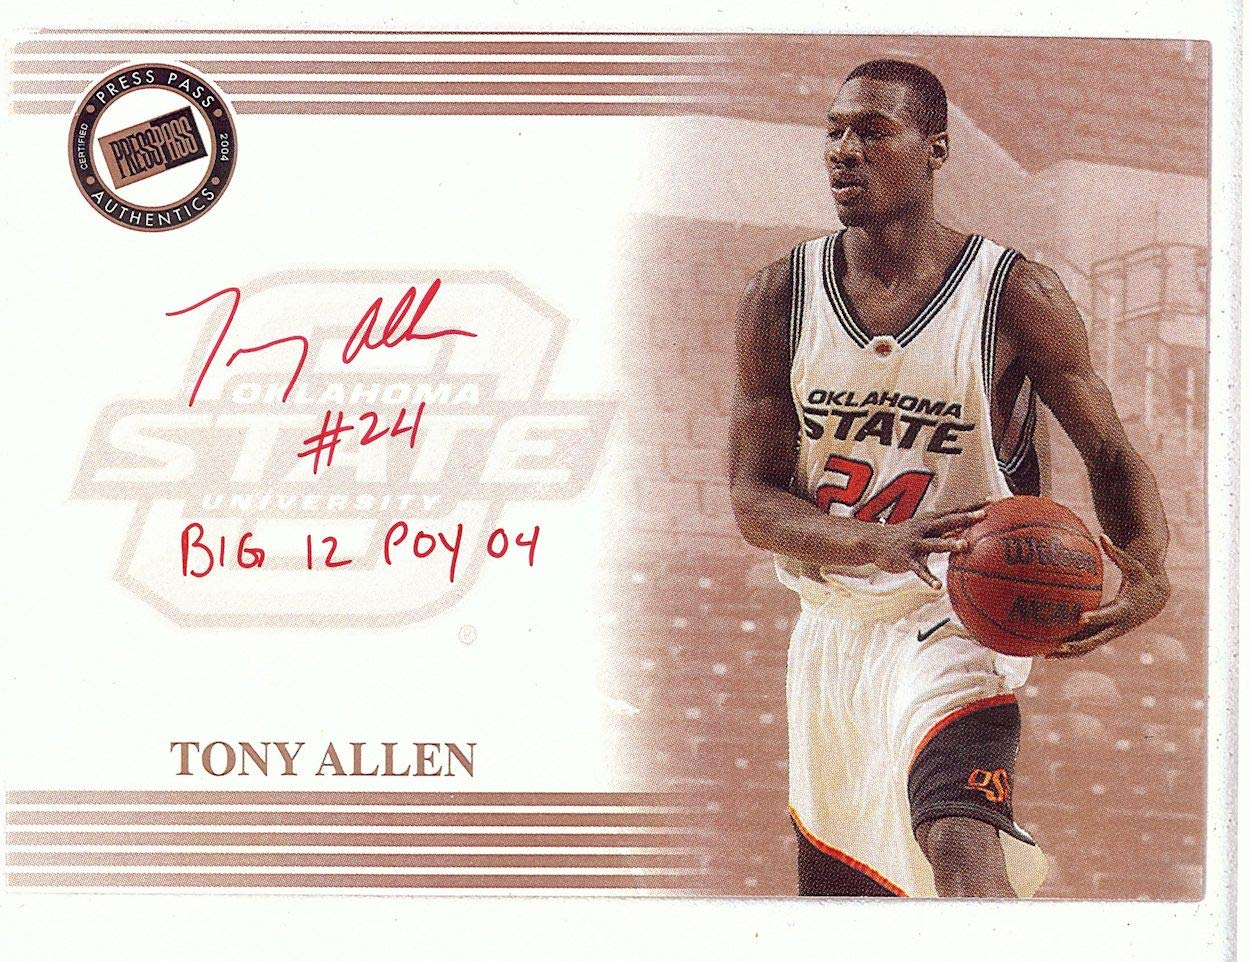 Tony Allen Signed Autographed 8.5X11 Photo Press Pass Enlarged Card w/COA